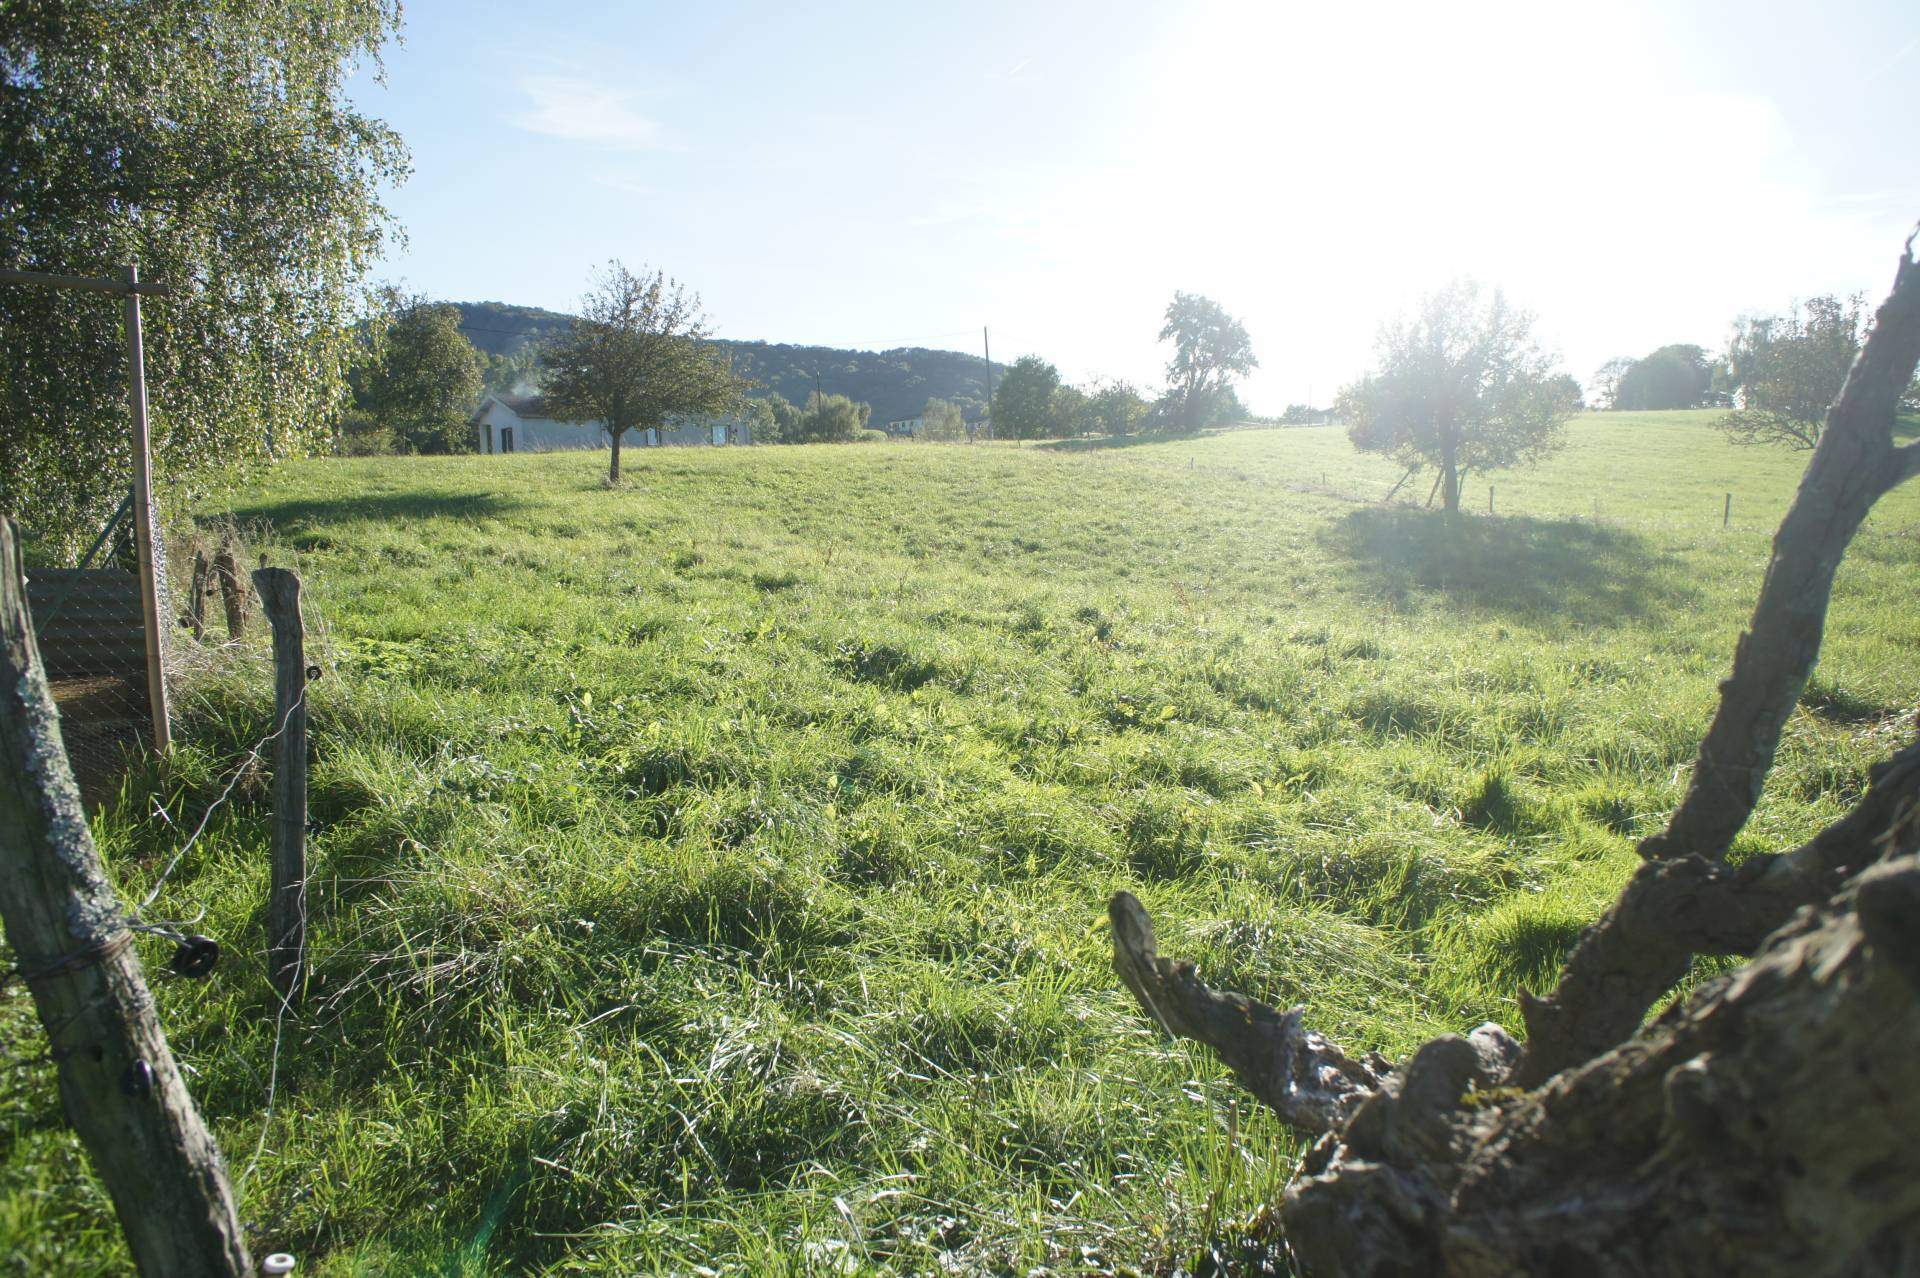 ASPET close, quiet, on the edge of a village, nice flat building of 3500 m², open views over the surrounding countryside and the Pyrenees. € 43,000 F.A.I.